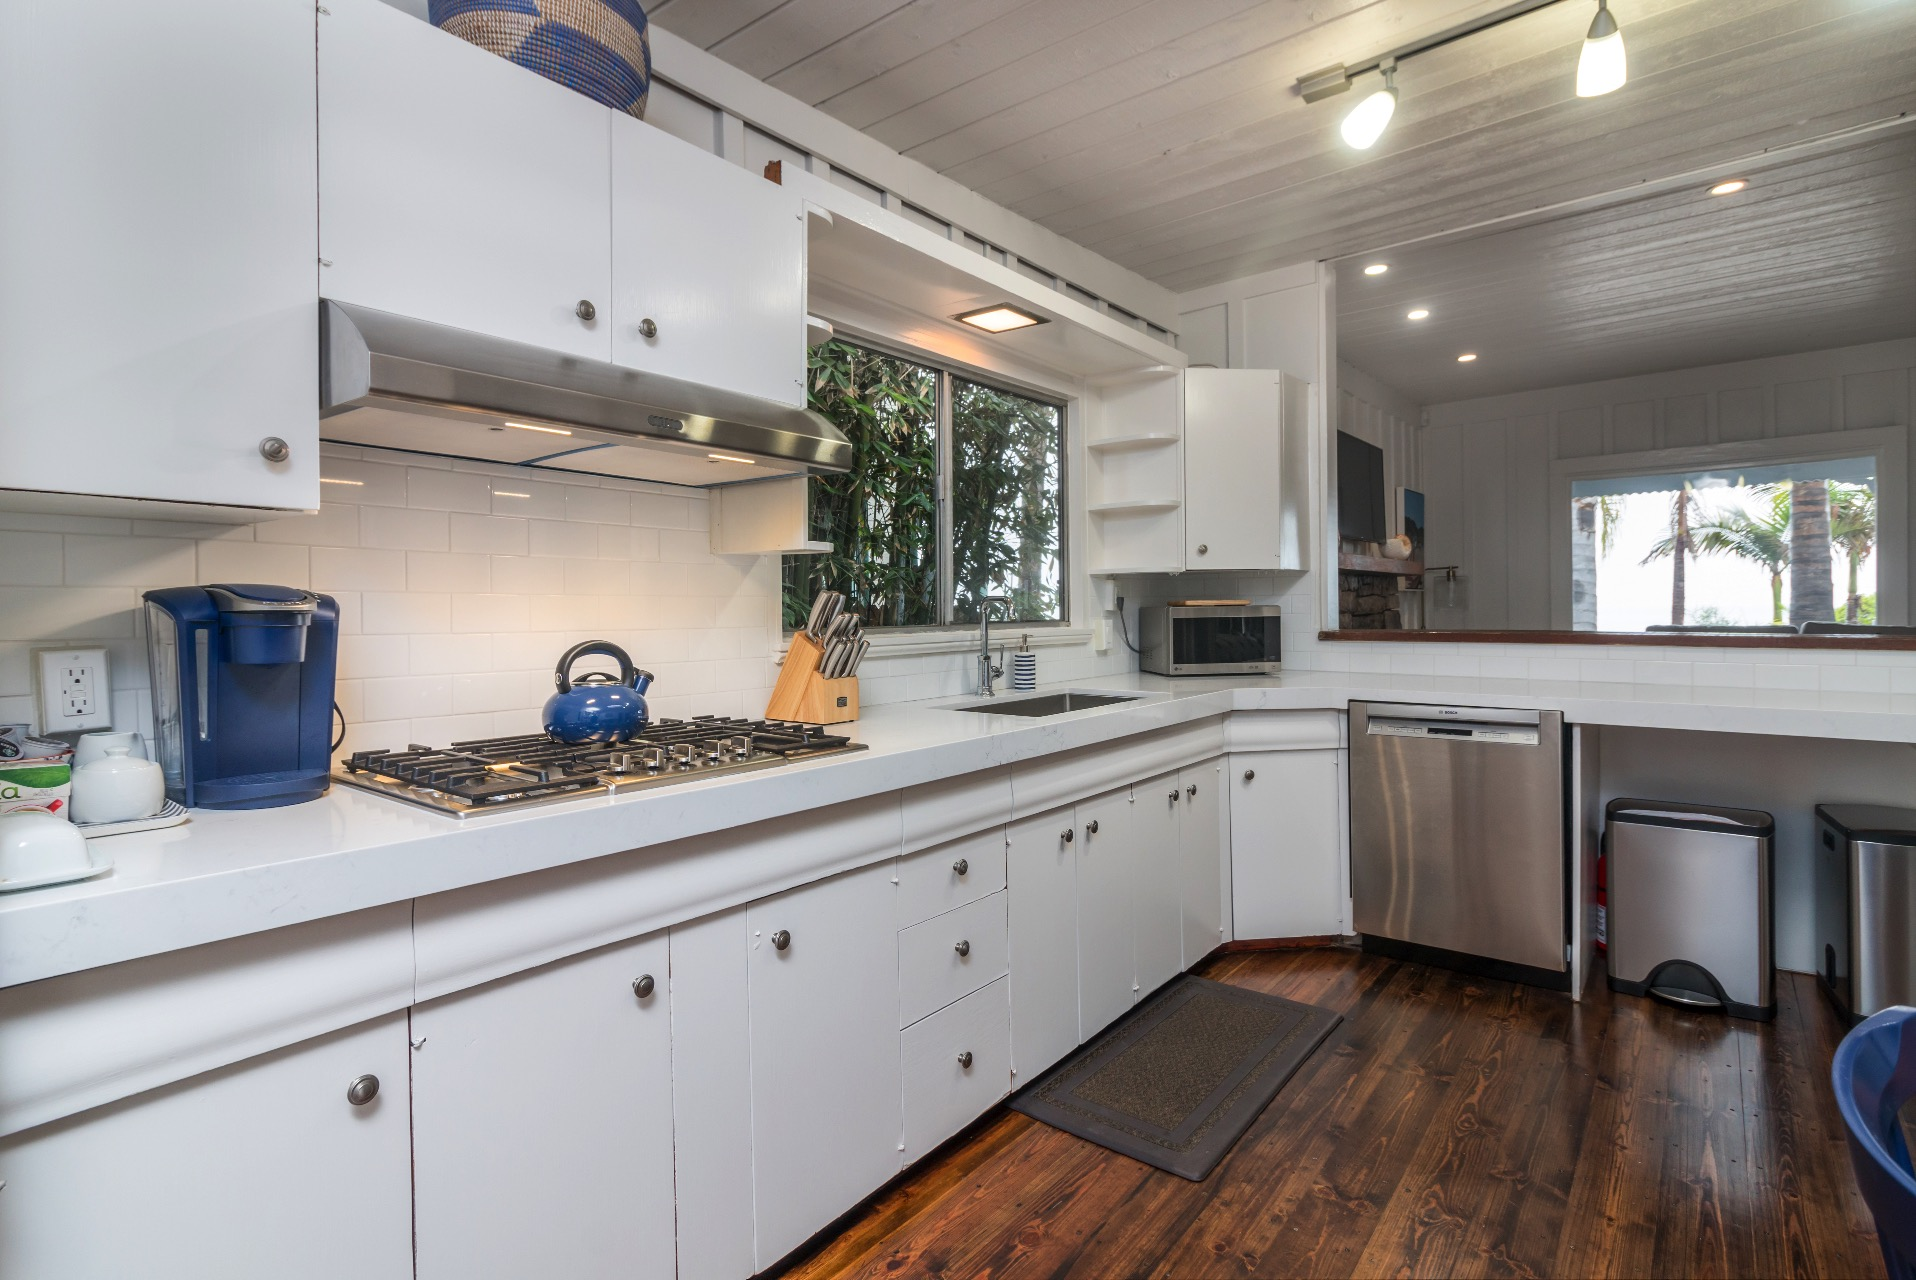 Kitchen has solid stone counter top, tile backsplash, new gas stove, dishwasher and stainless steel sink.